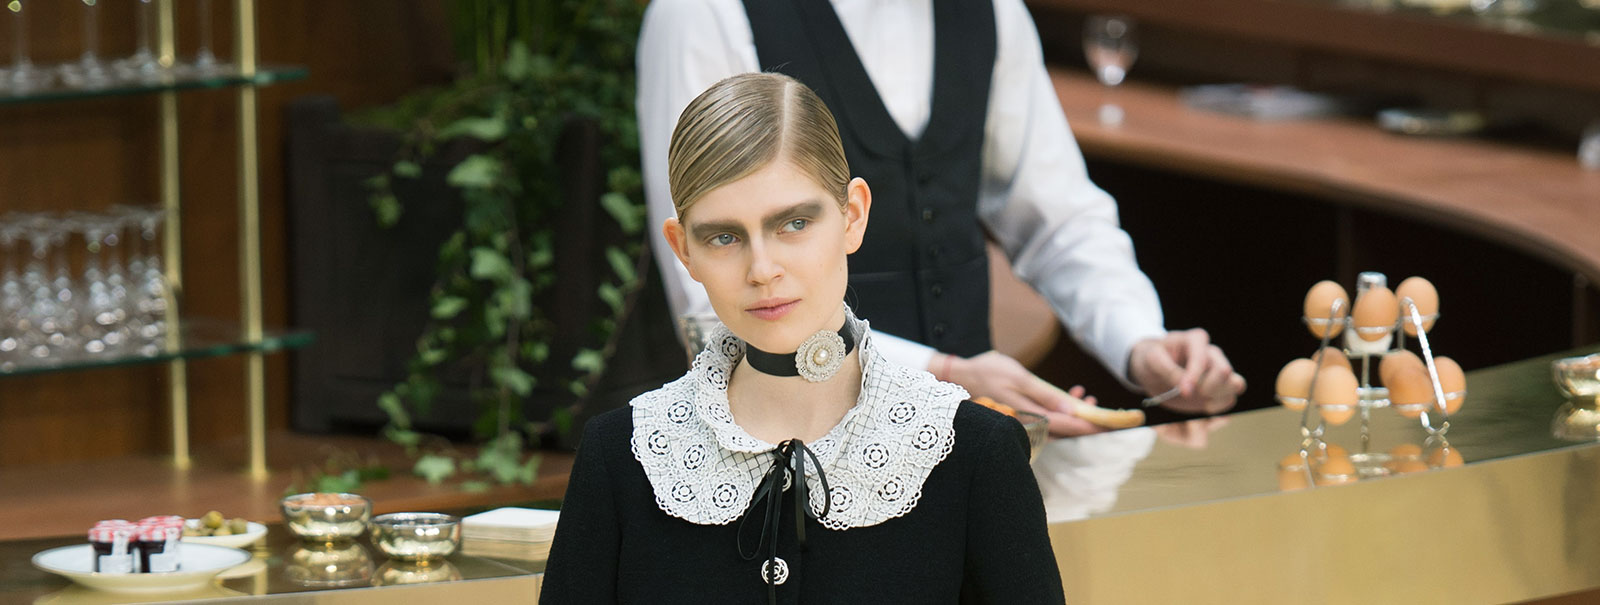 Chanel - Parigi Fashion Week - AI 2015